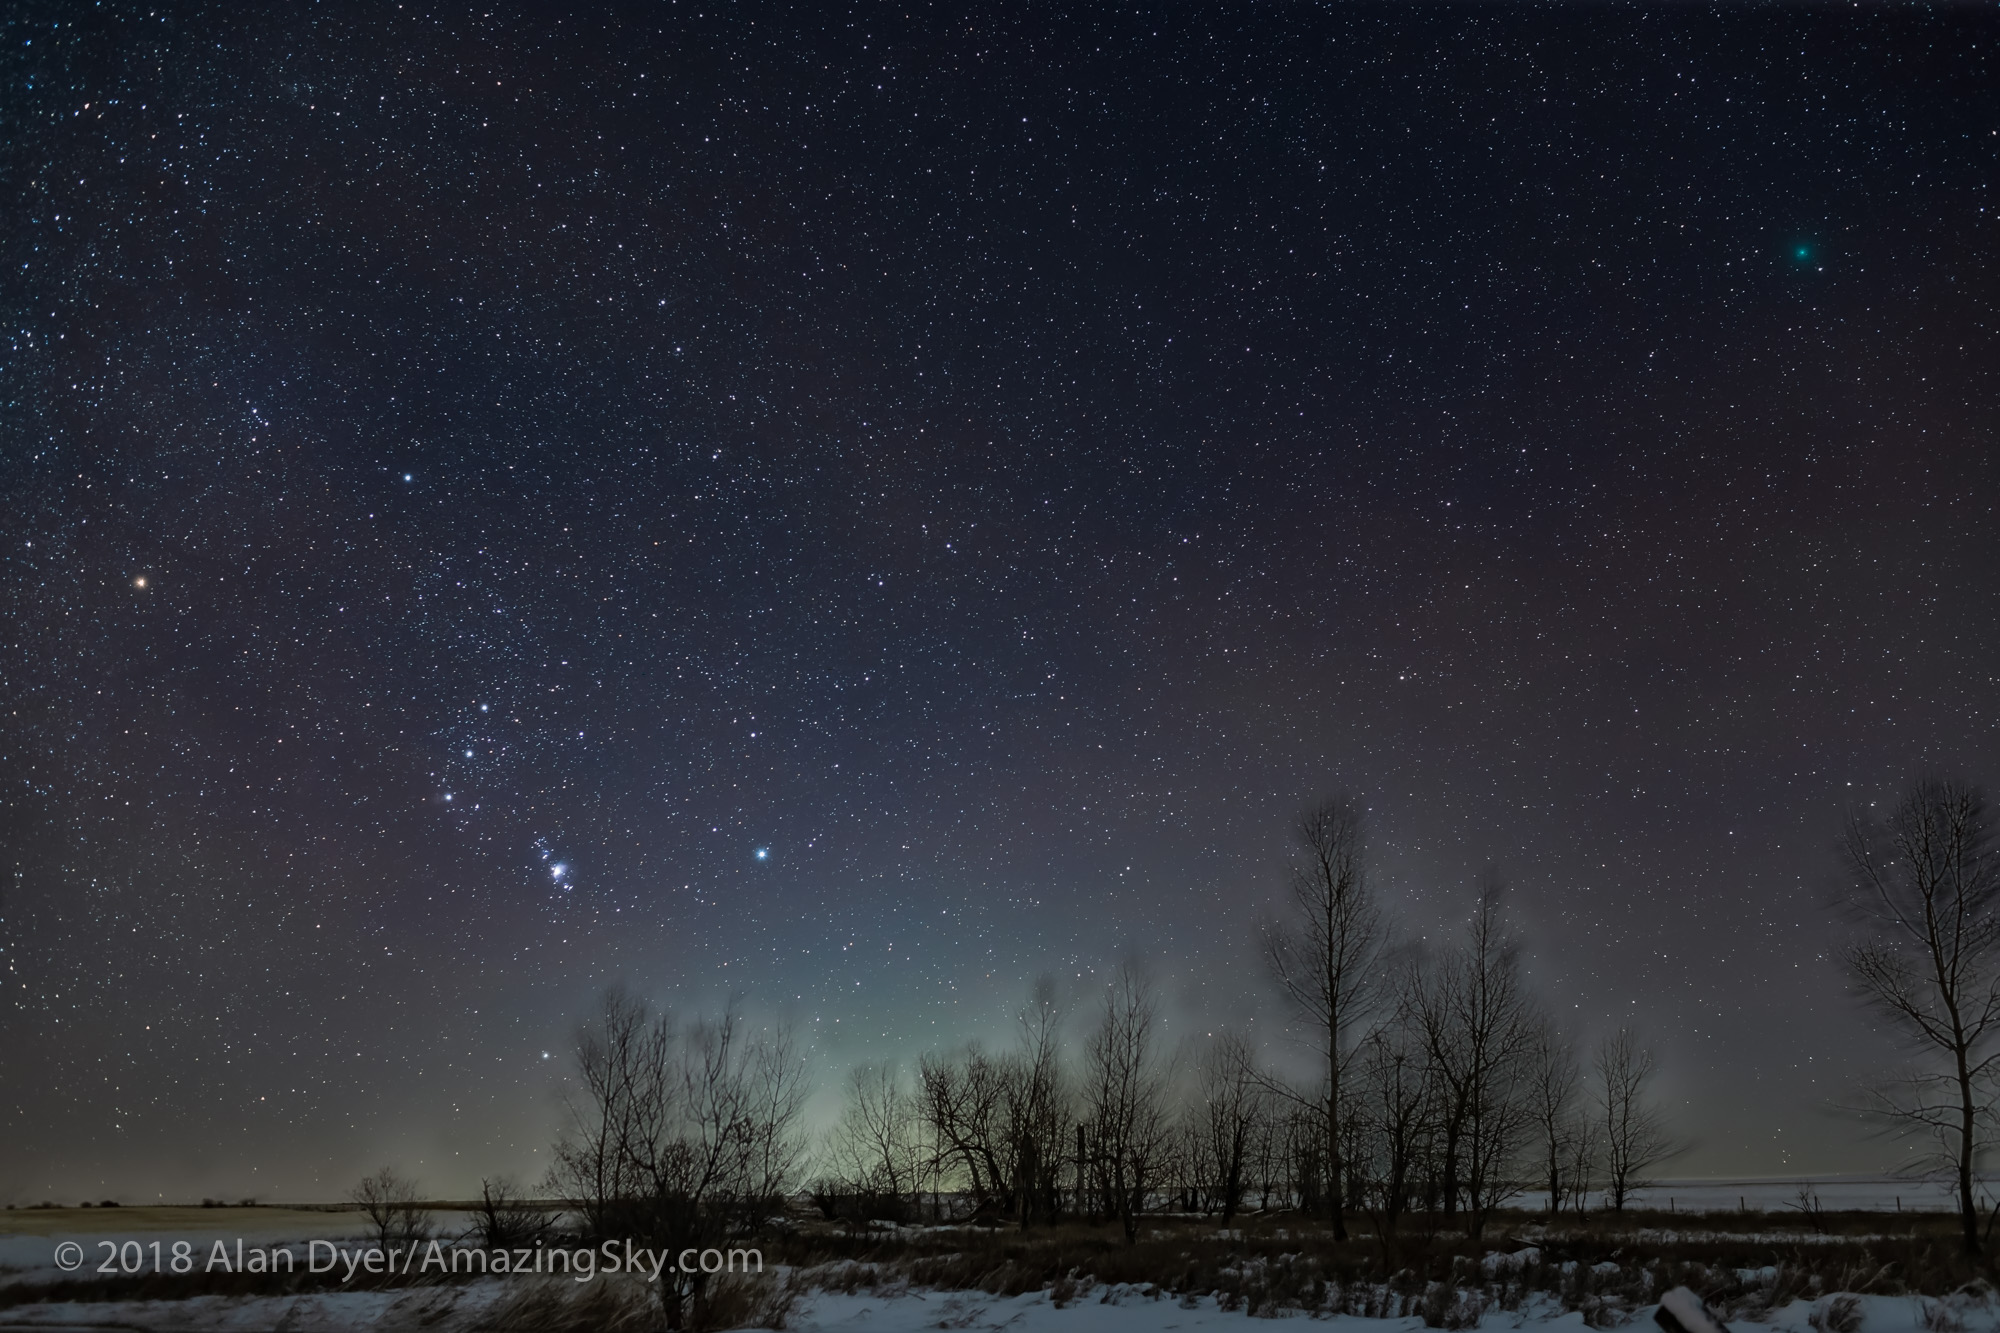 Winter Green Comet with Orion